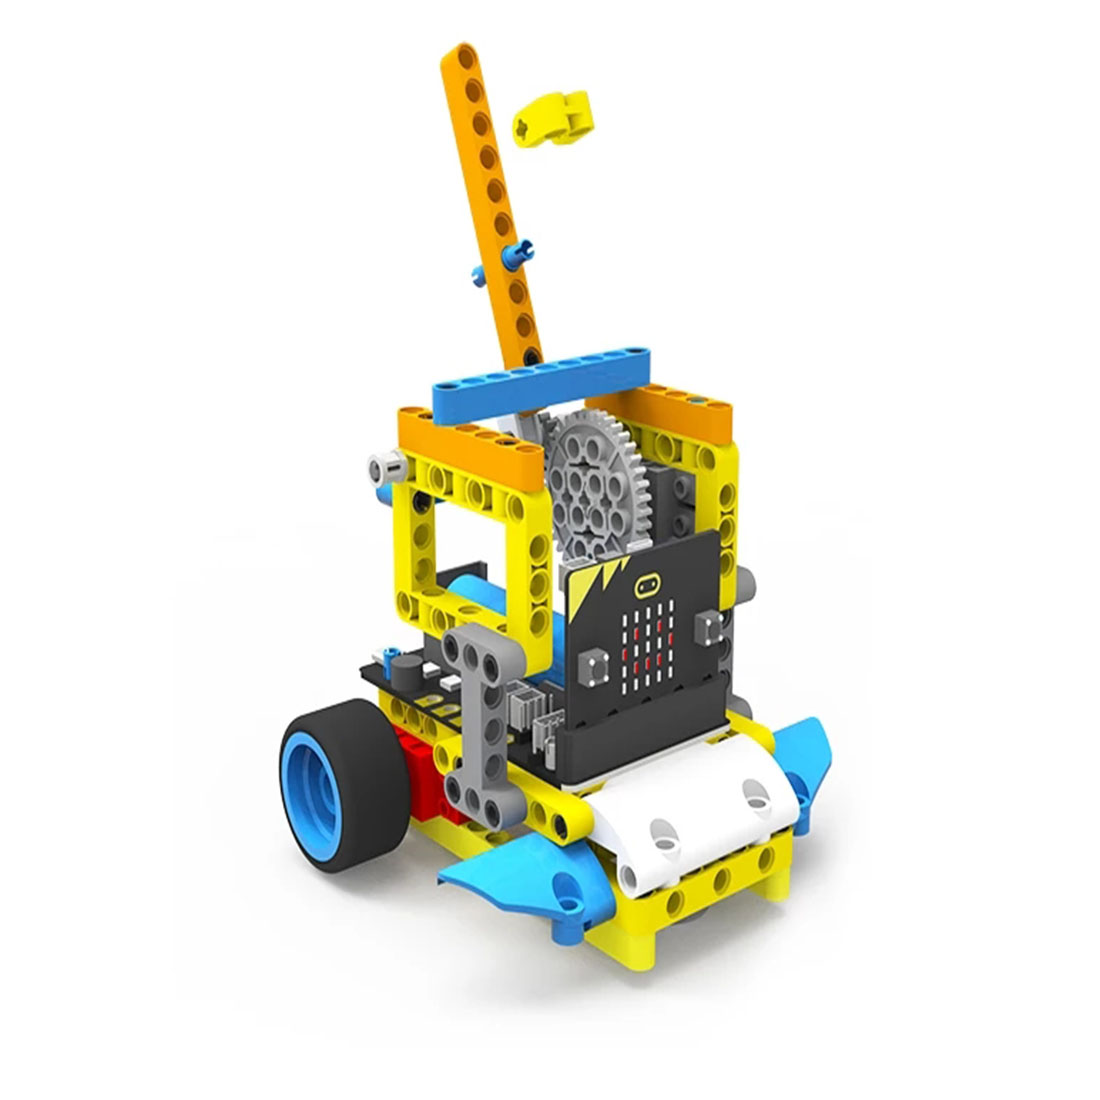 Programmable Intelligent Robot Building Block Car Kit Various Shapes Steam Education Car For Micro:bit(Include Micro:bit Board)